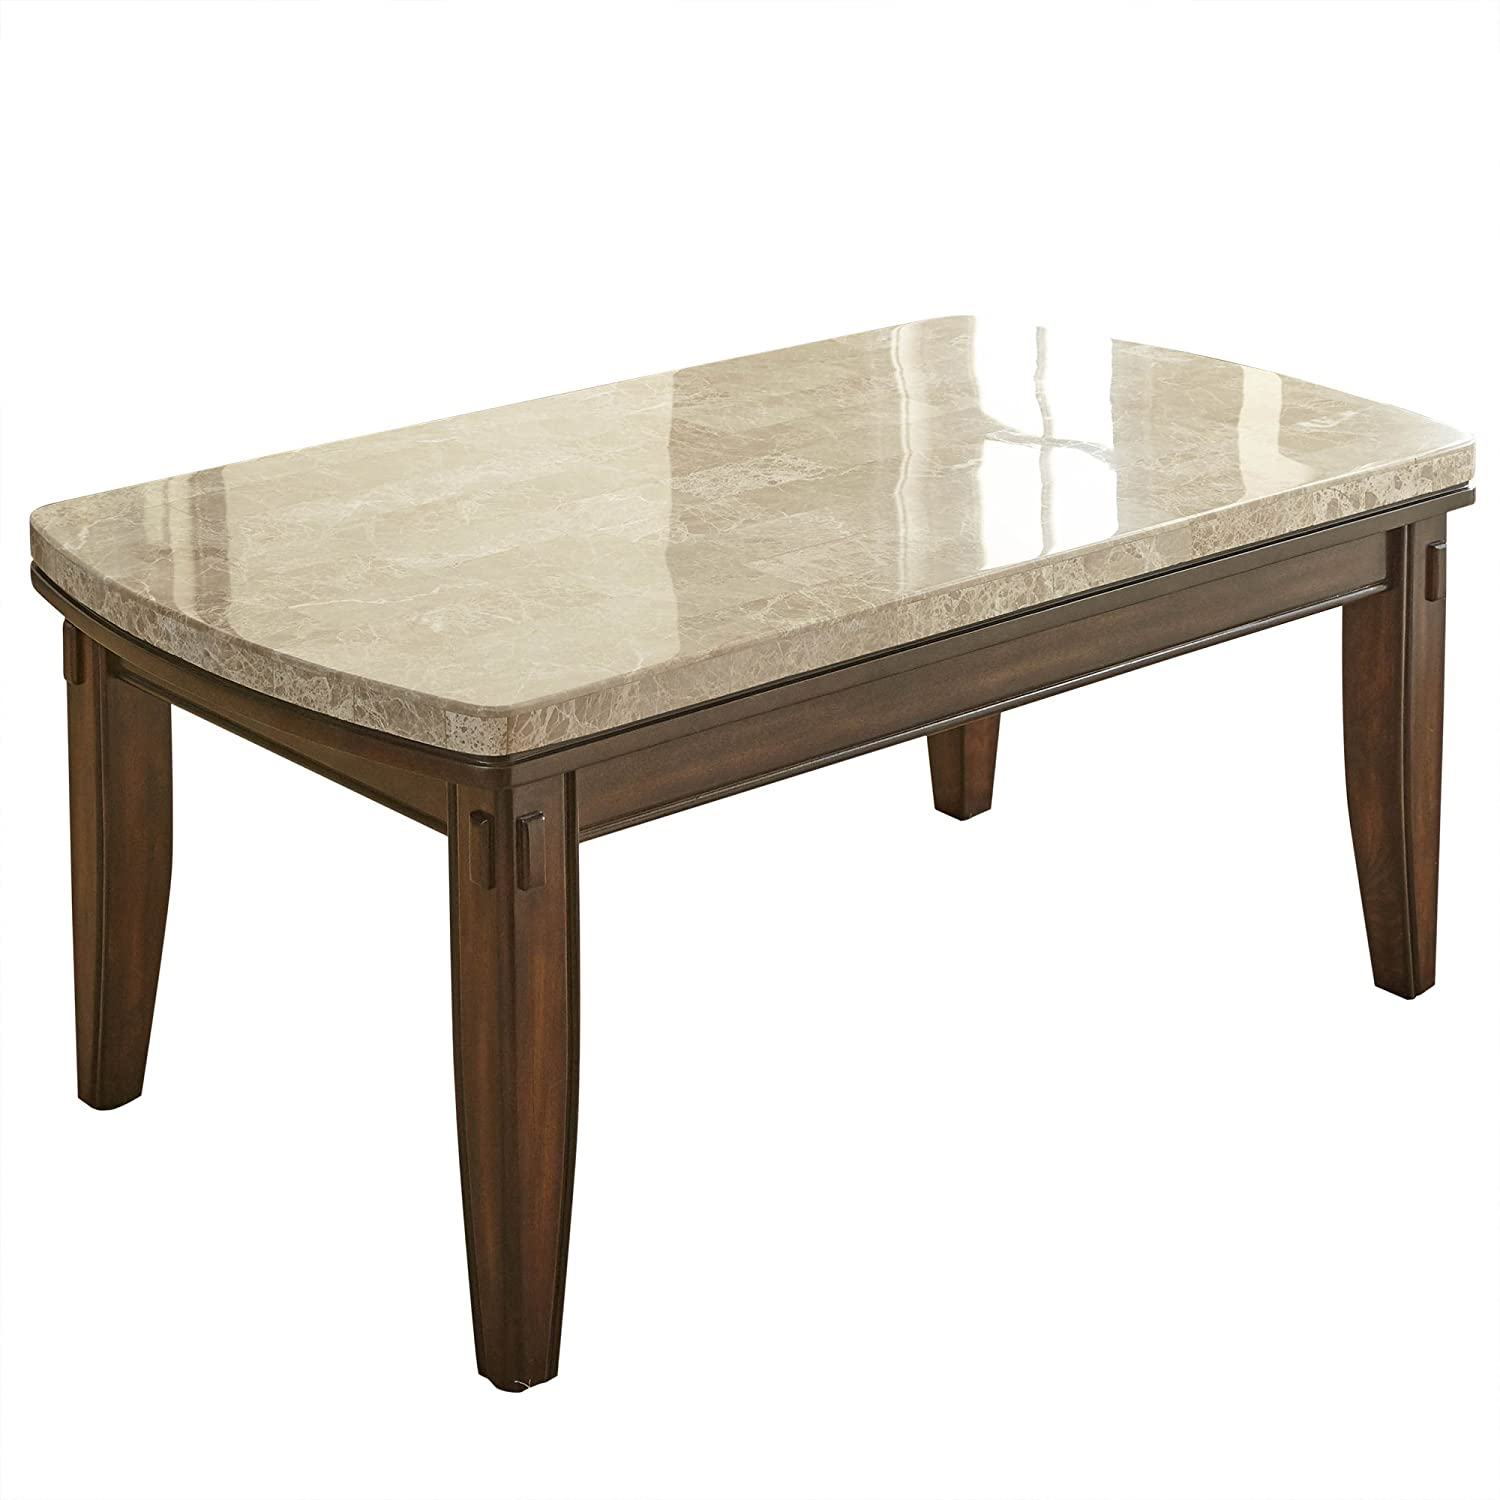 Marble coffee table reviews, Best marble coffee table